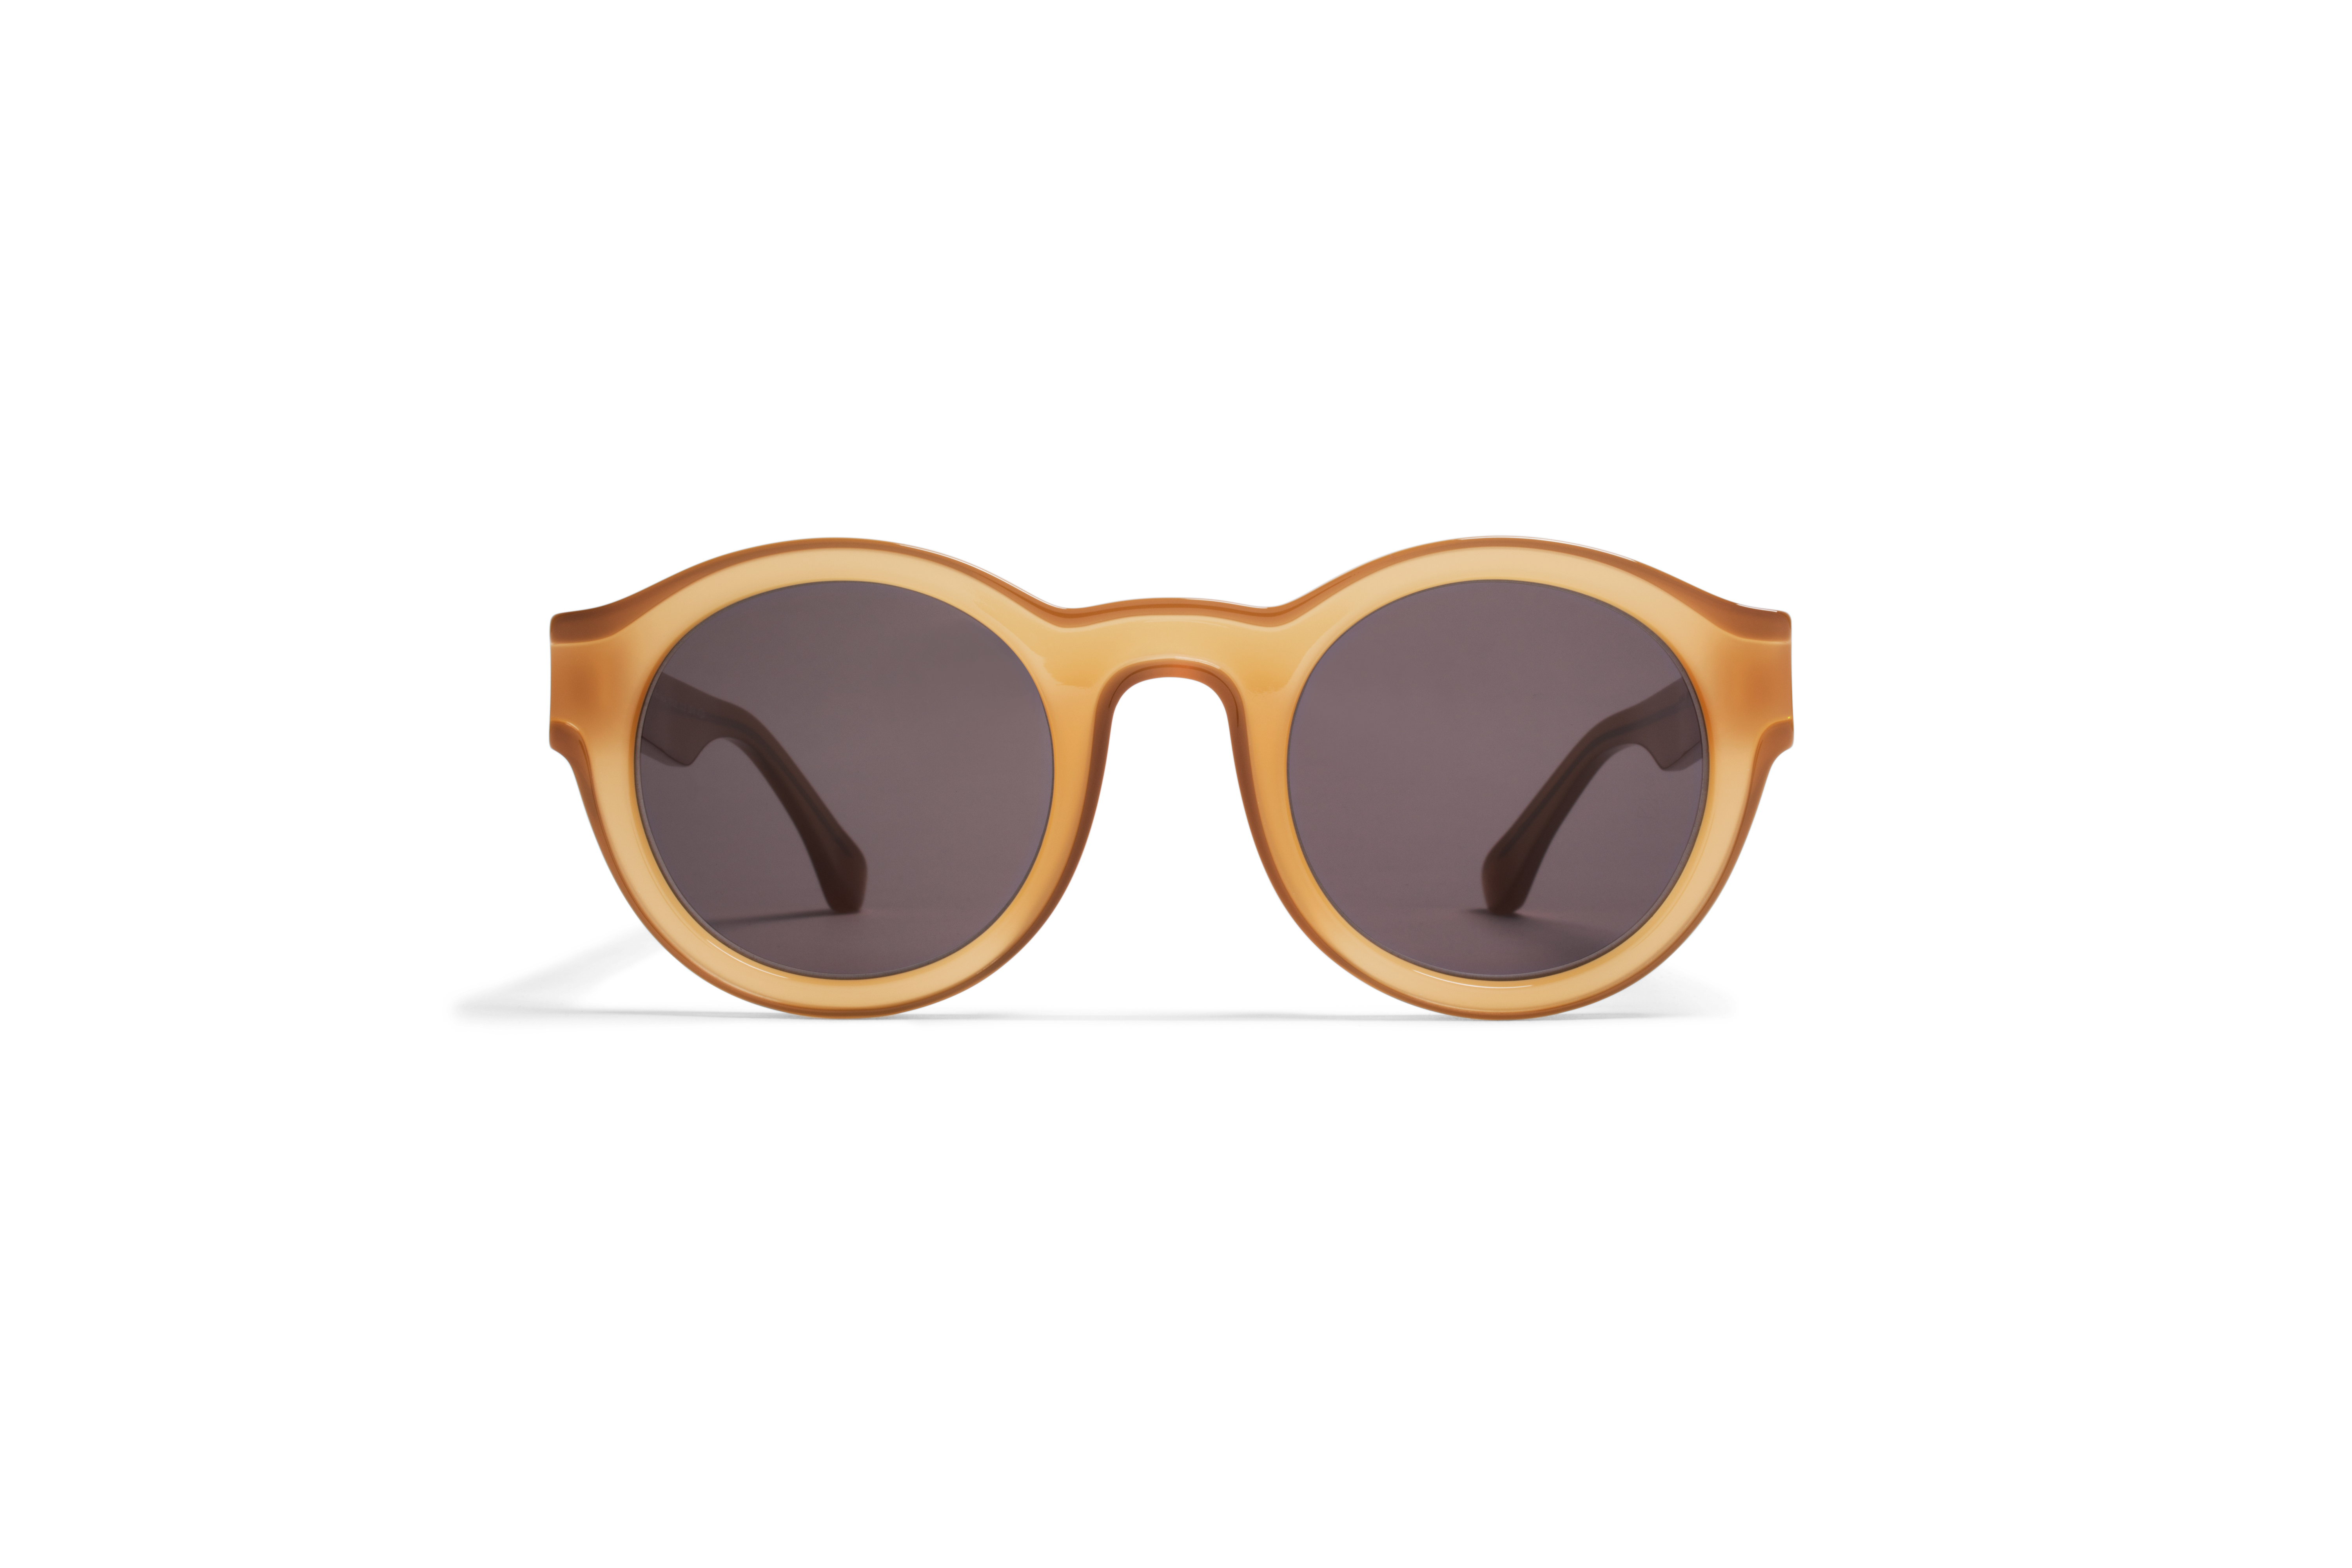 MYKITA Collmmm Sun Mmdual002 D6 Brown Dark Brown S5707c72732873